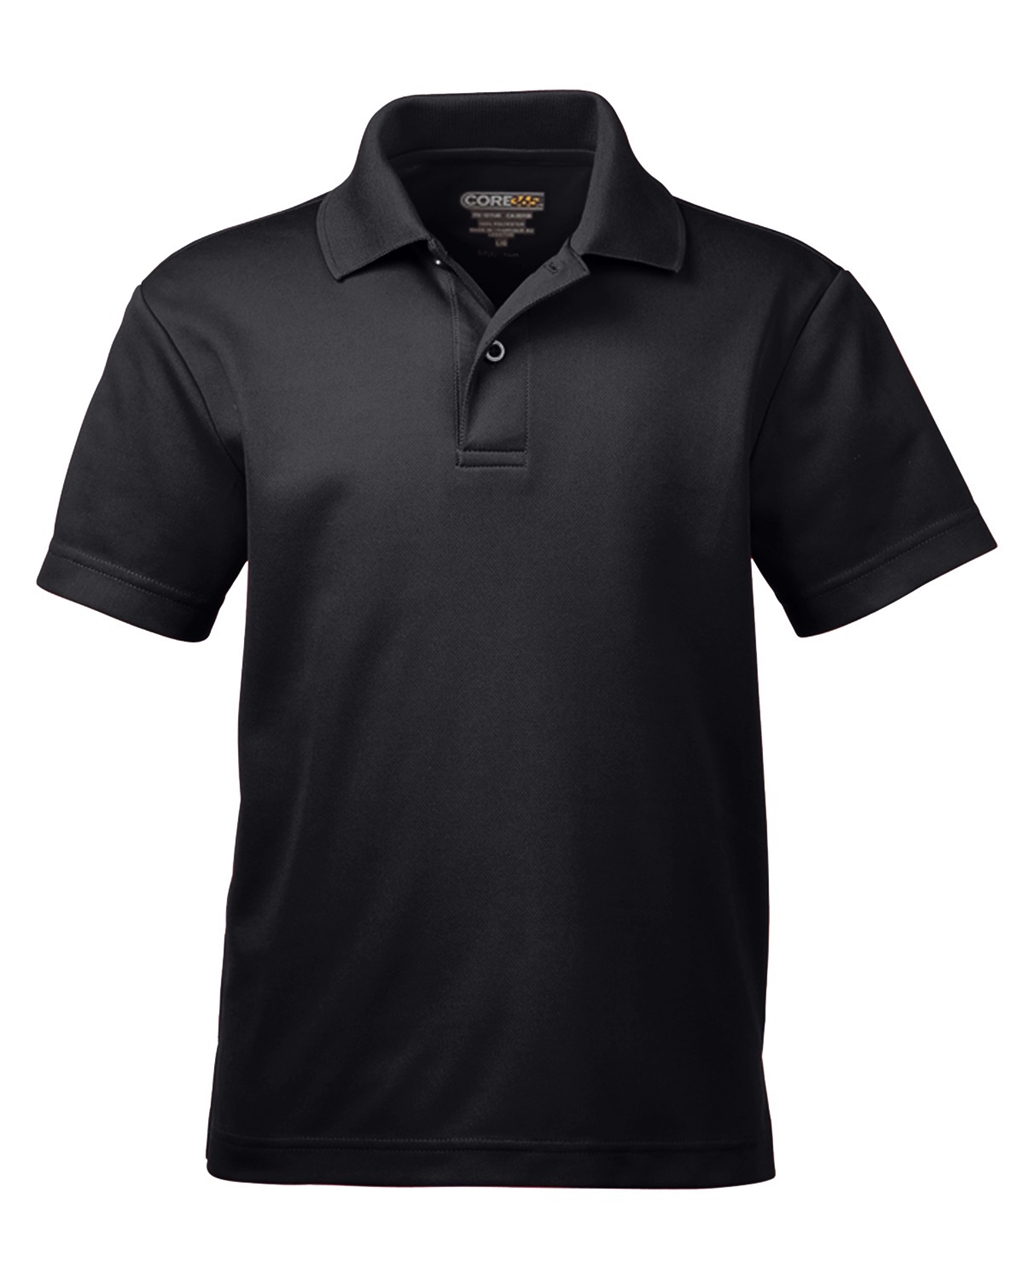 Picture of Core 365 Youth Origin Performance Pique Polo